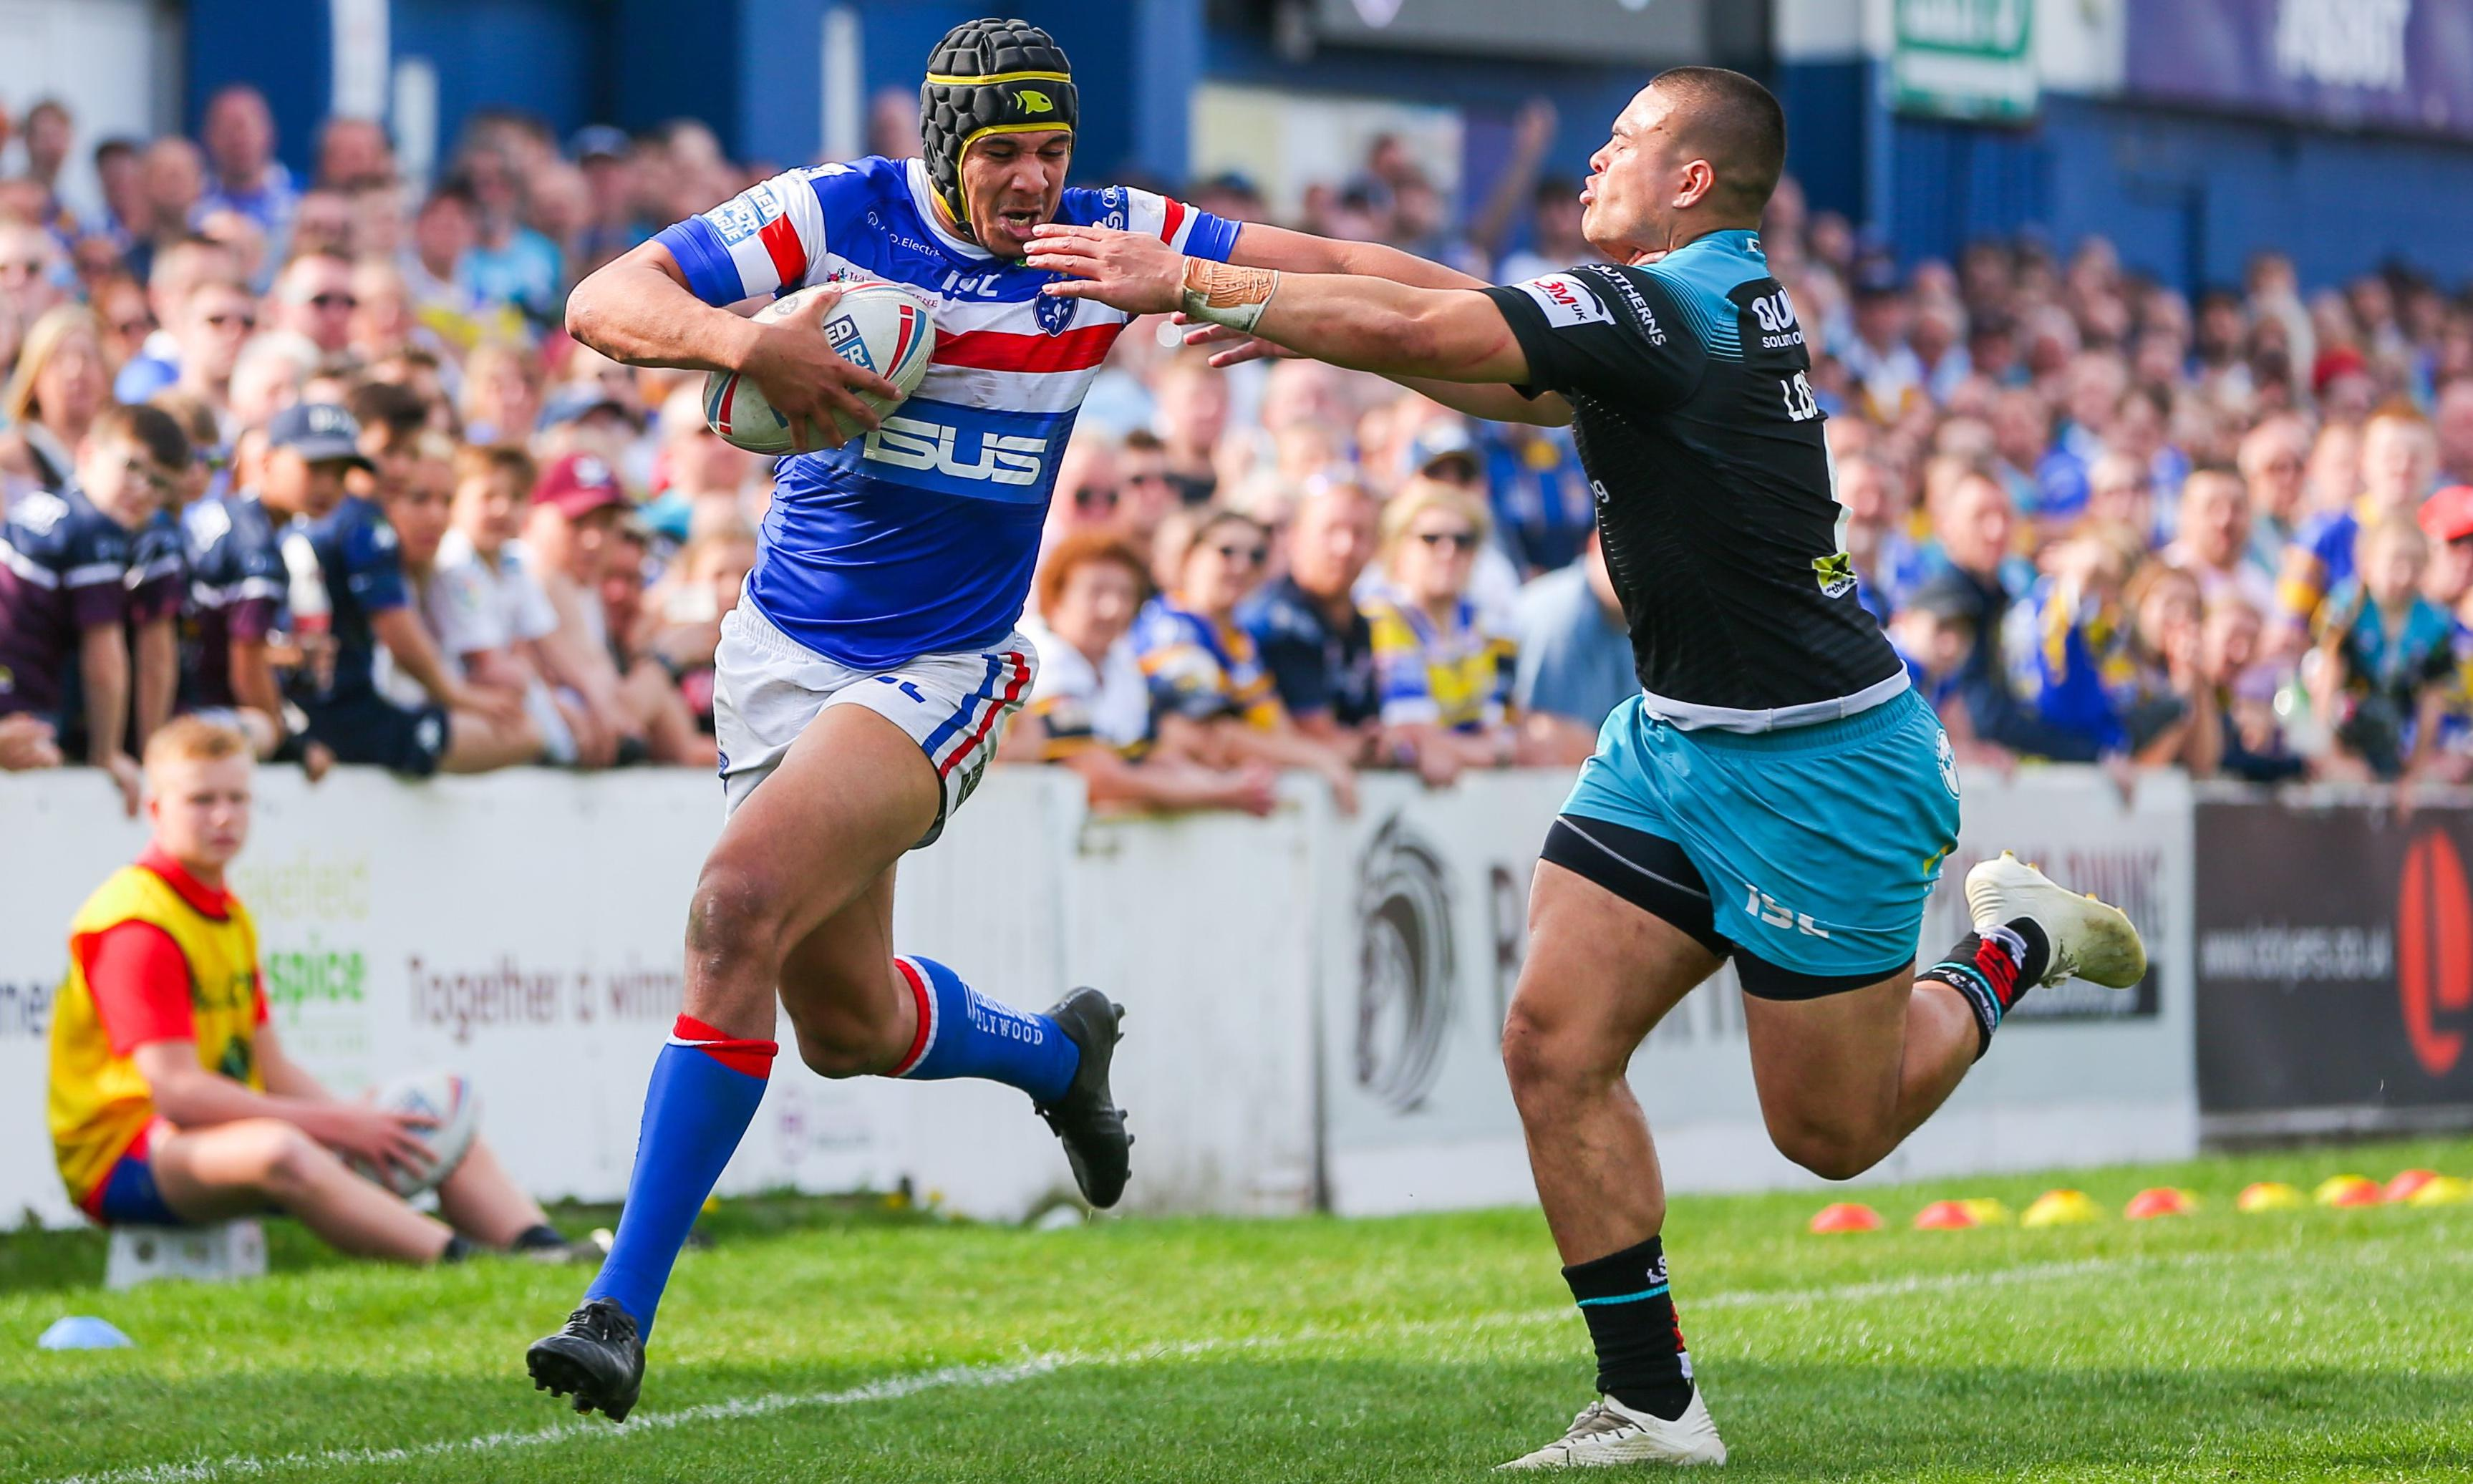 Wakefield delight coach Chris Chester with narrow win over Leeds